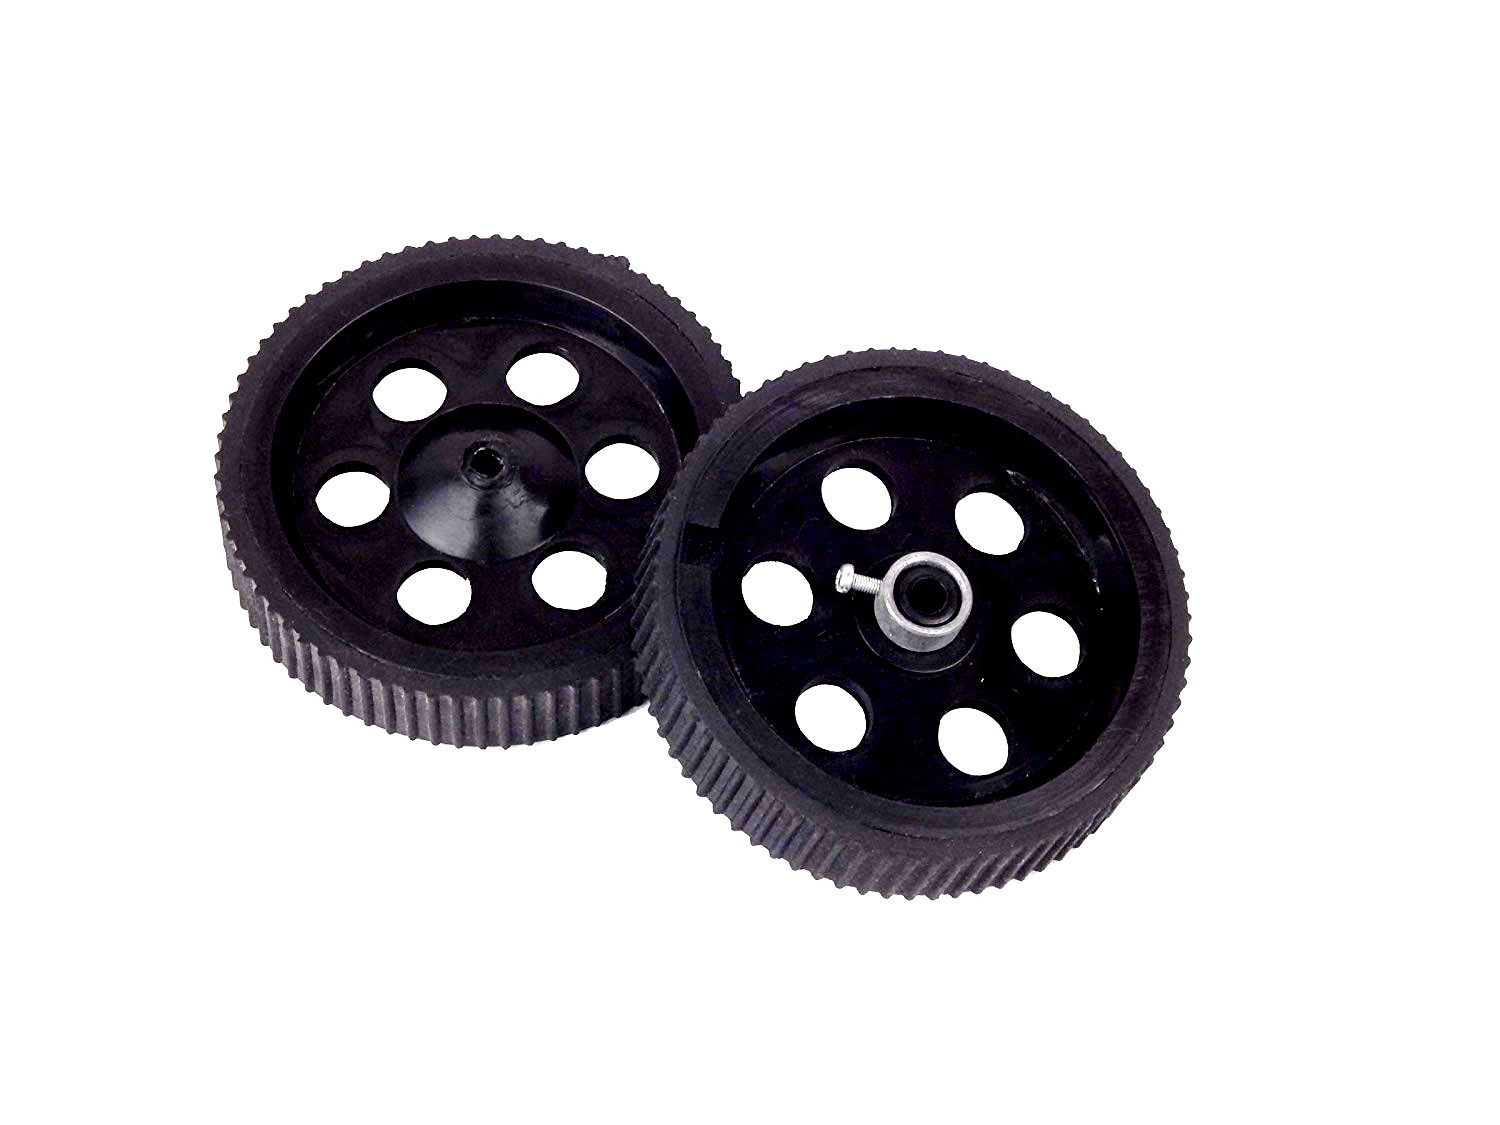 Robot Wheel 10 x 2 cm for Motors